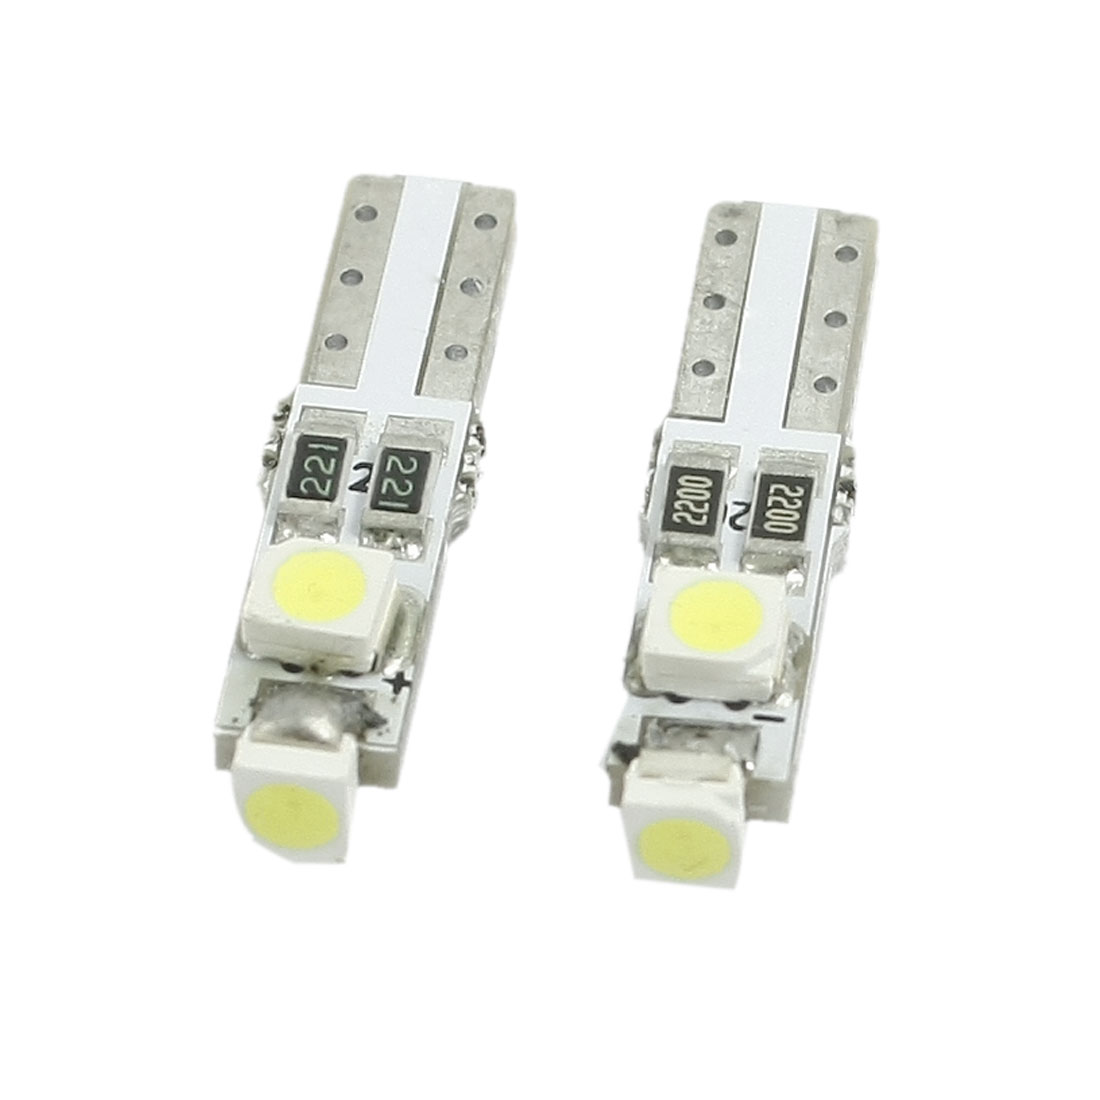 2 Pcs White 1210 3 SMD LED Light T5 Car Auto Wedge Bulb Lamp